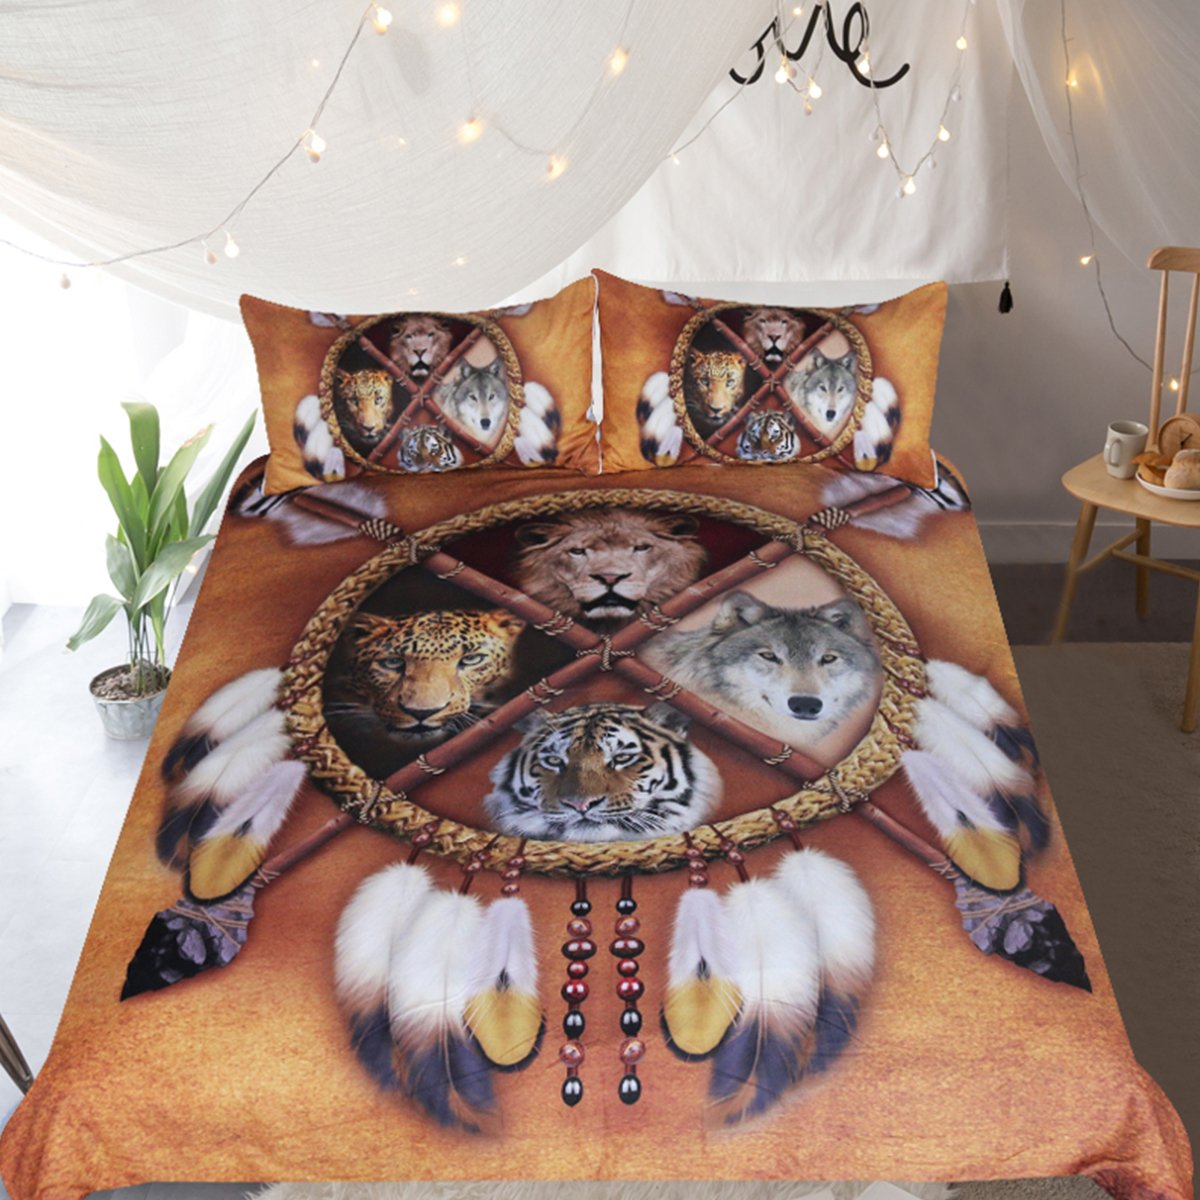 Sleepwish Wolf Dream Catcher Bedding, Native American Golden Brown Indian Bedspreads, Lion and Tiger 3 Piece Tribal Animals Duvet Cover (King)